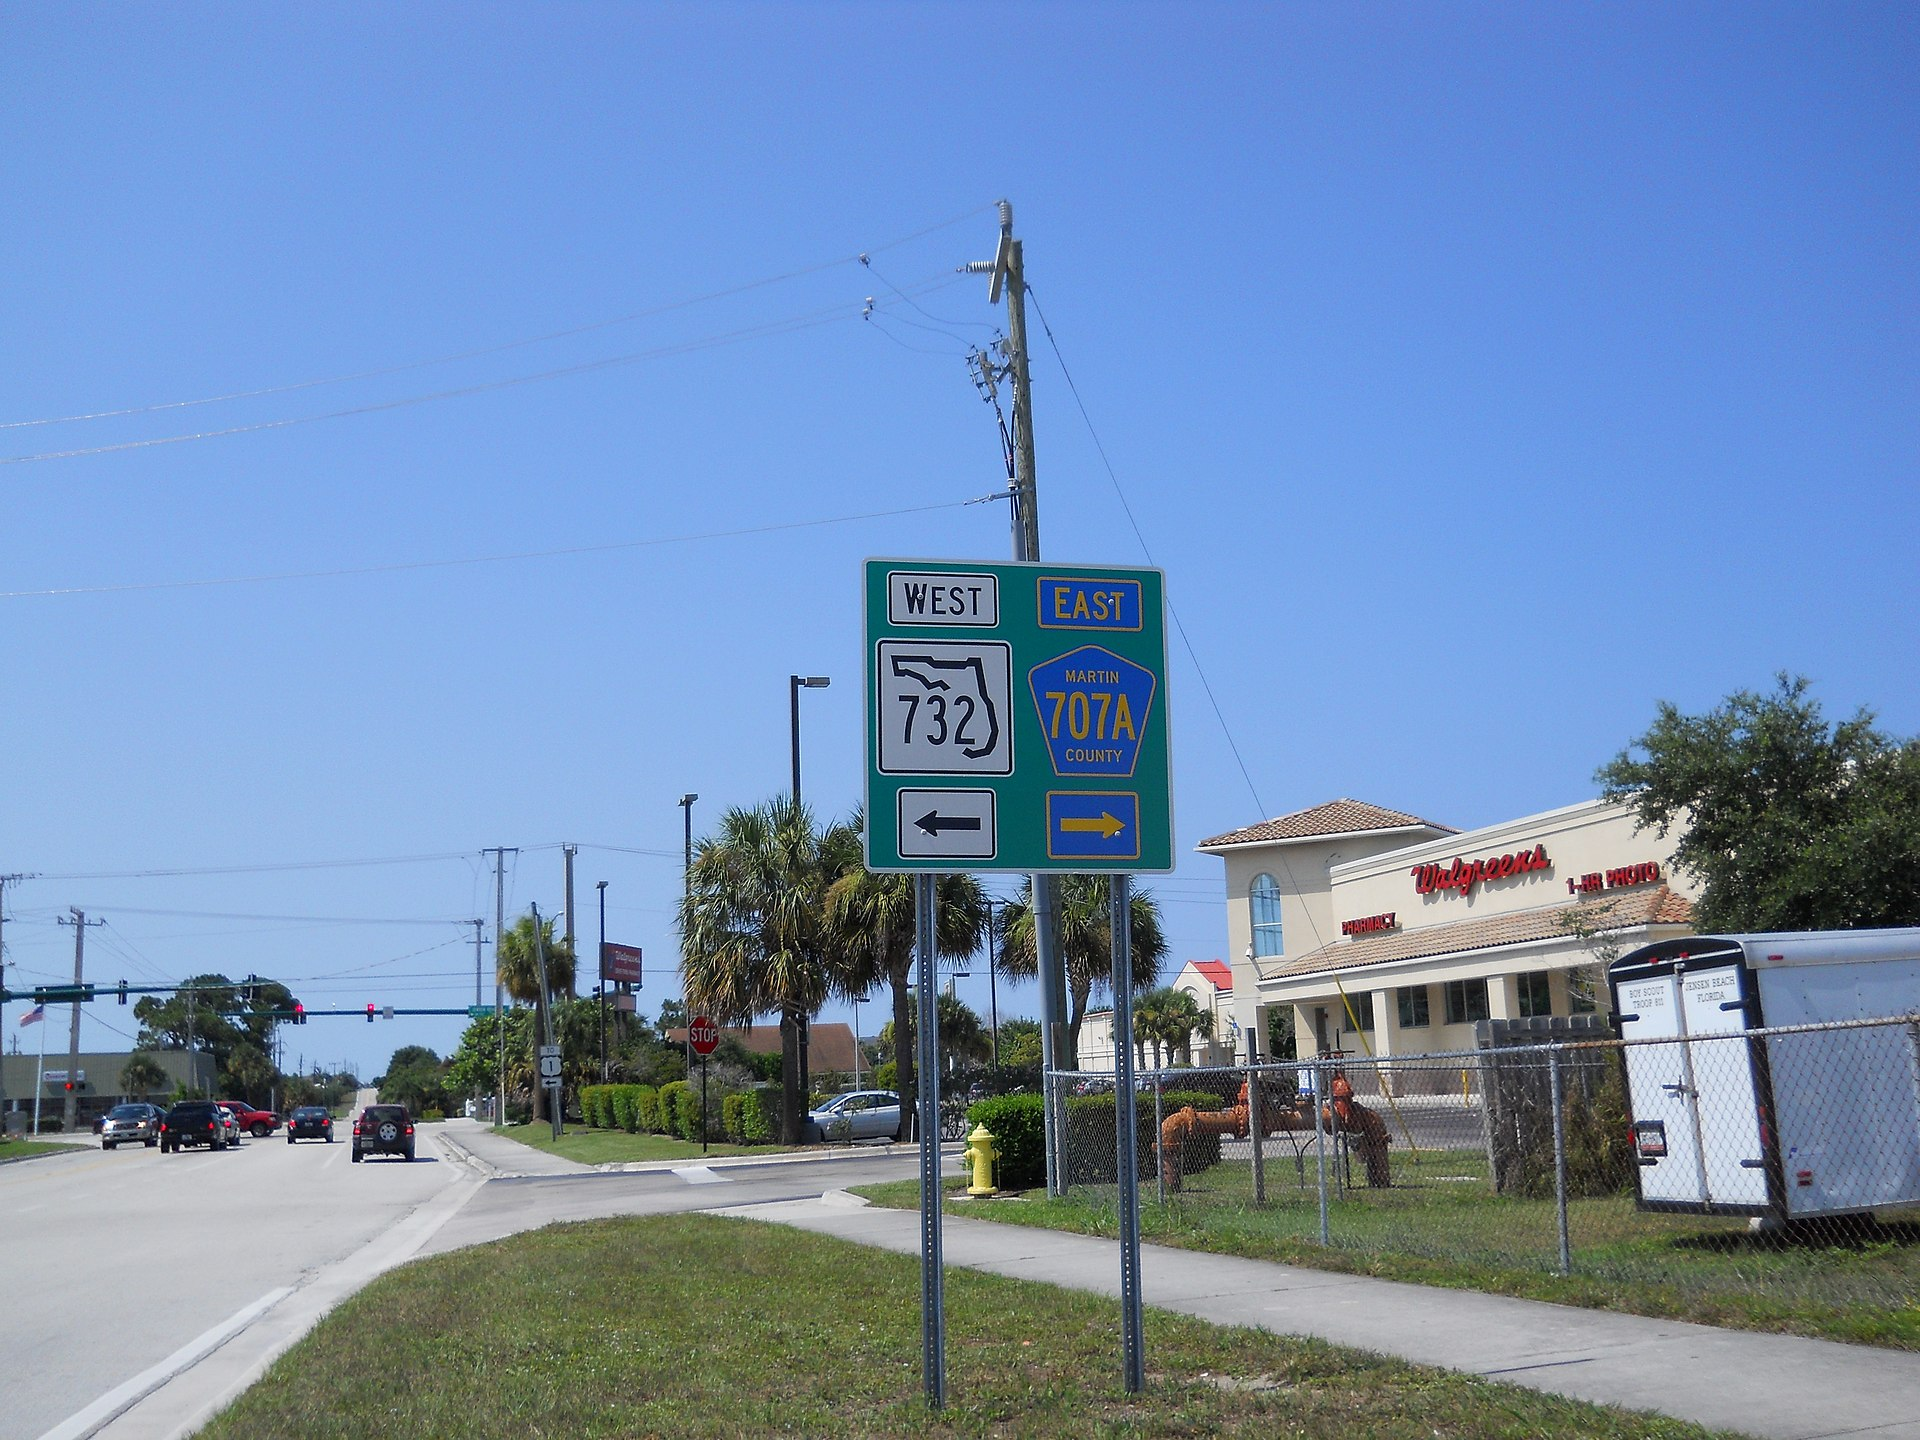 Ne Jensen Beach Blvd